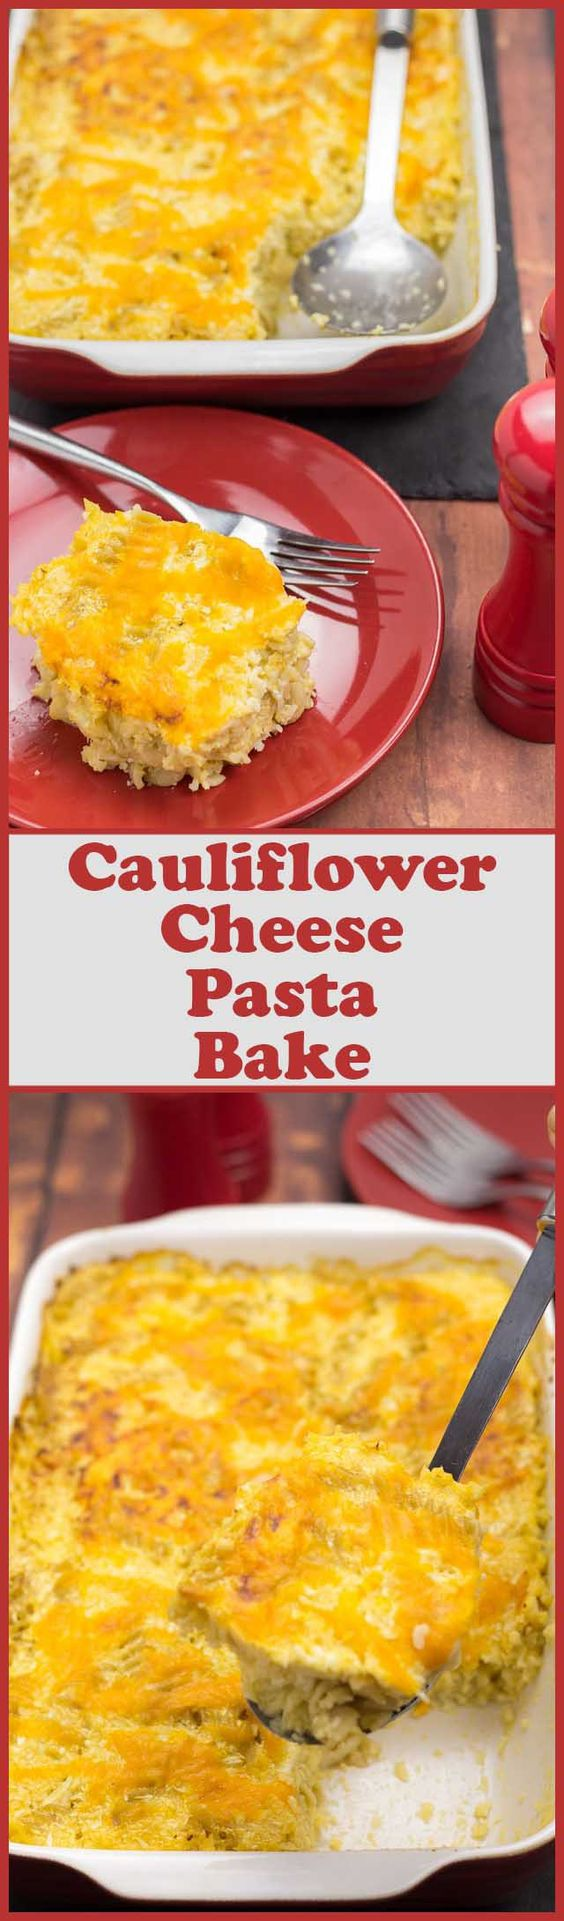 Recipe for cauliflower cheese pasta bake